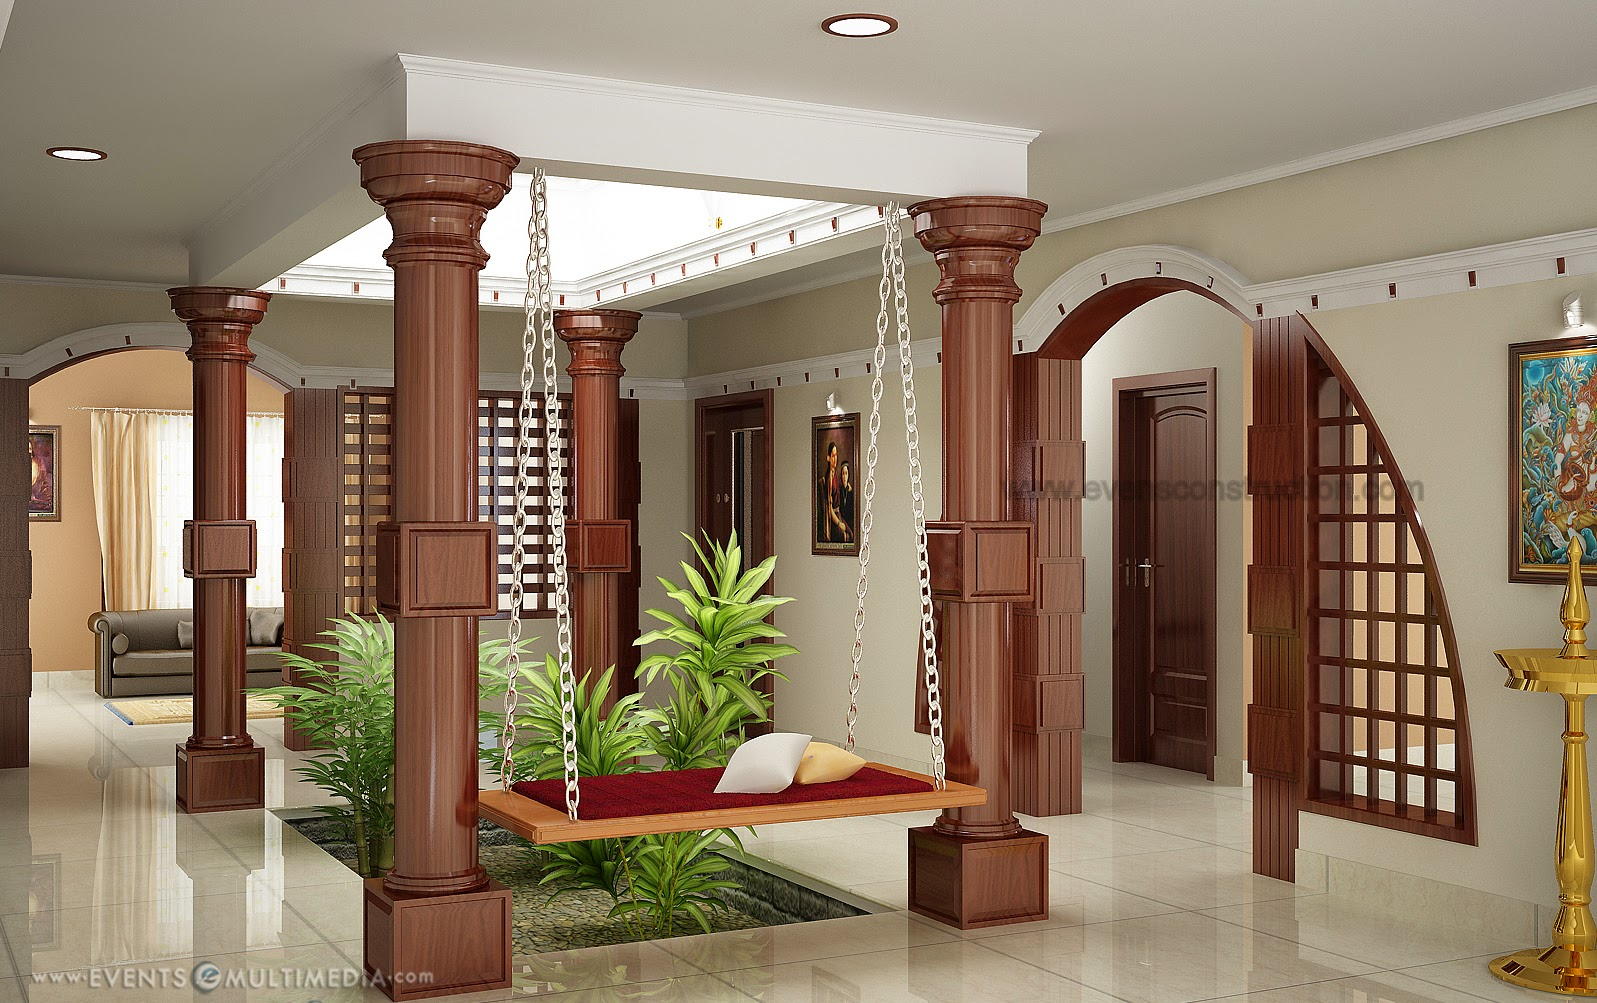 Kerala Style Home Plans With Interior Courtyard Inspiration